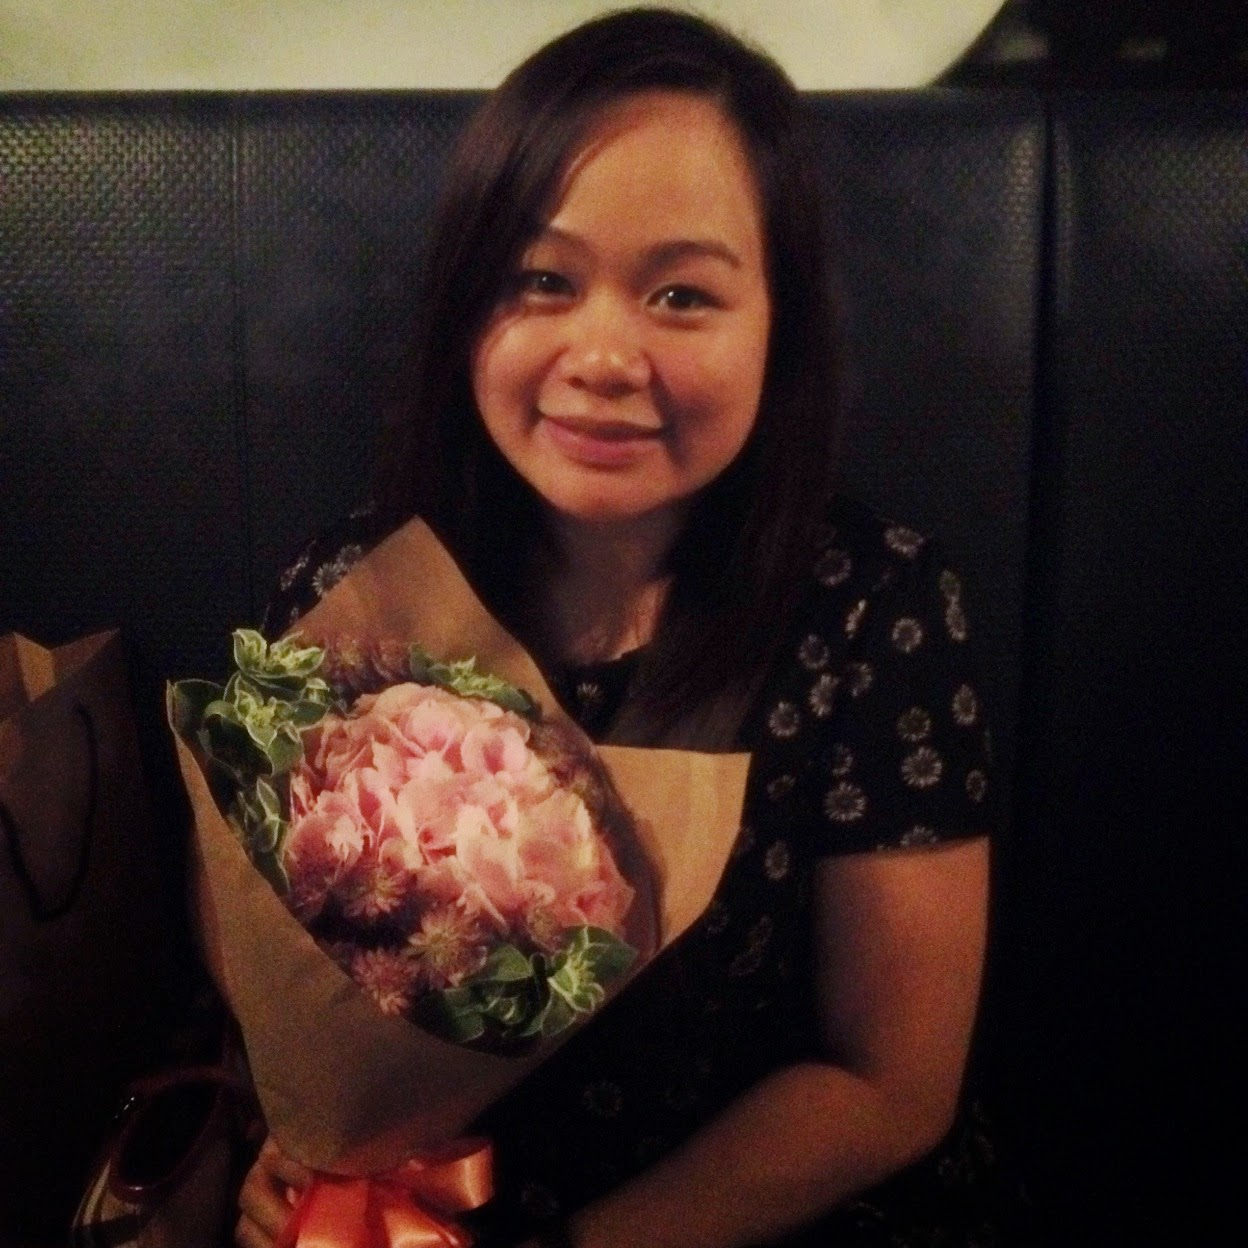 Flowers from Le Hubby! ❤